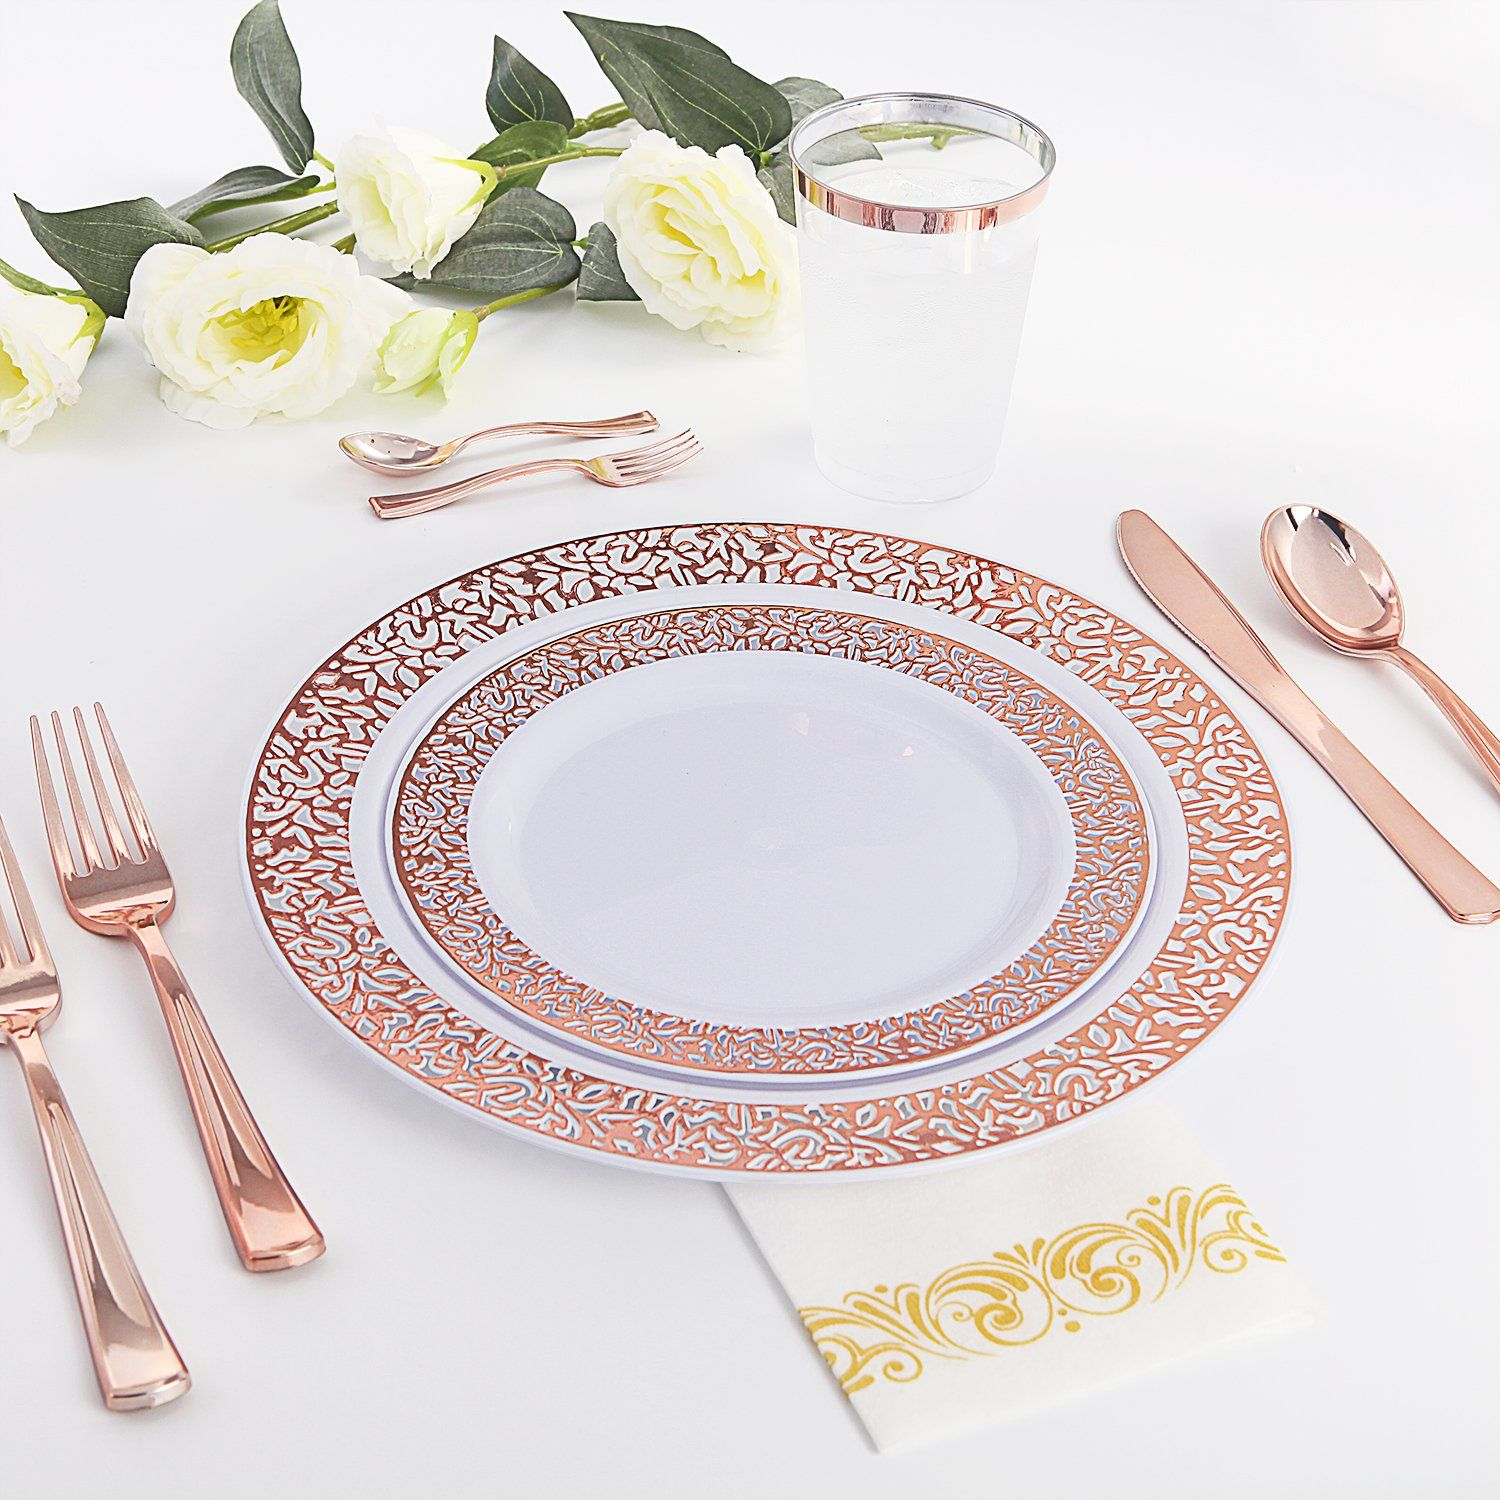 Plastic ROSE ROSE GOLD FORKS Disposable TABLEWARE Party Wedding Buffet SALE